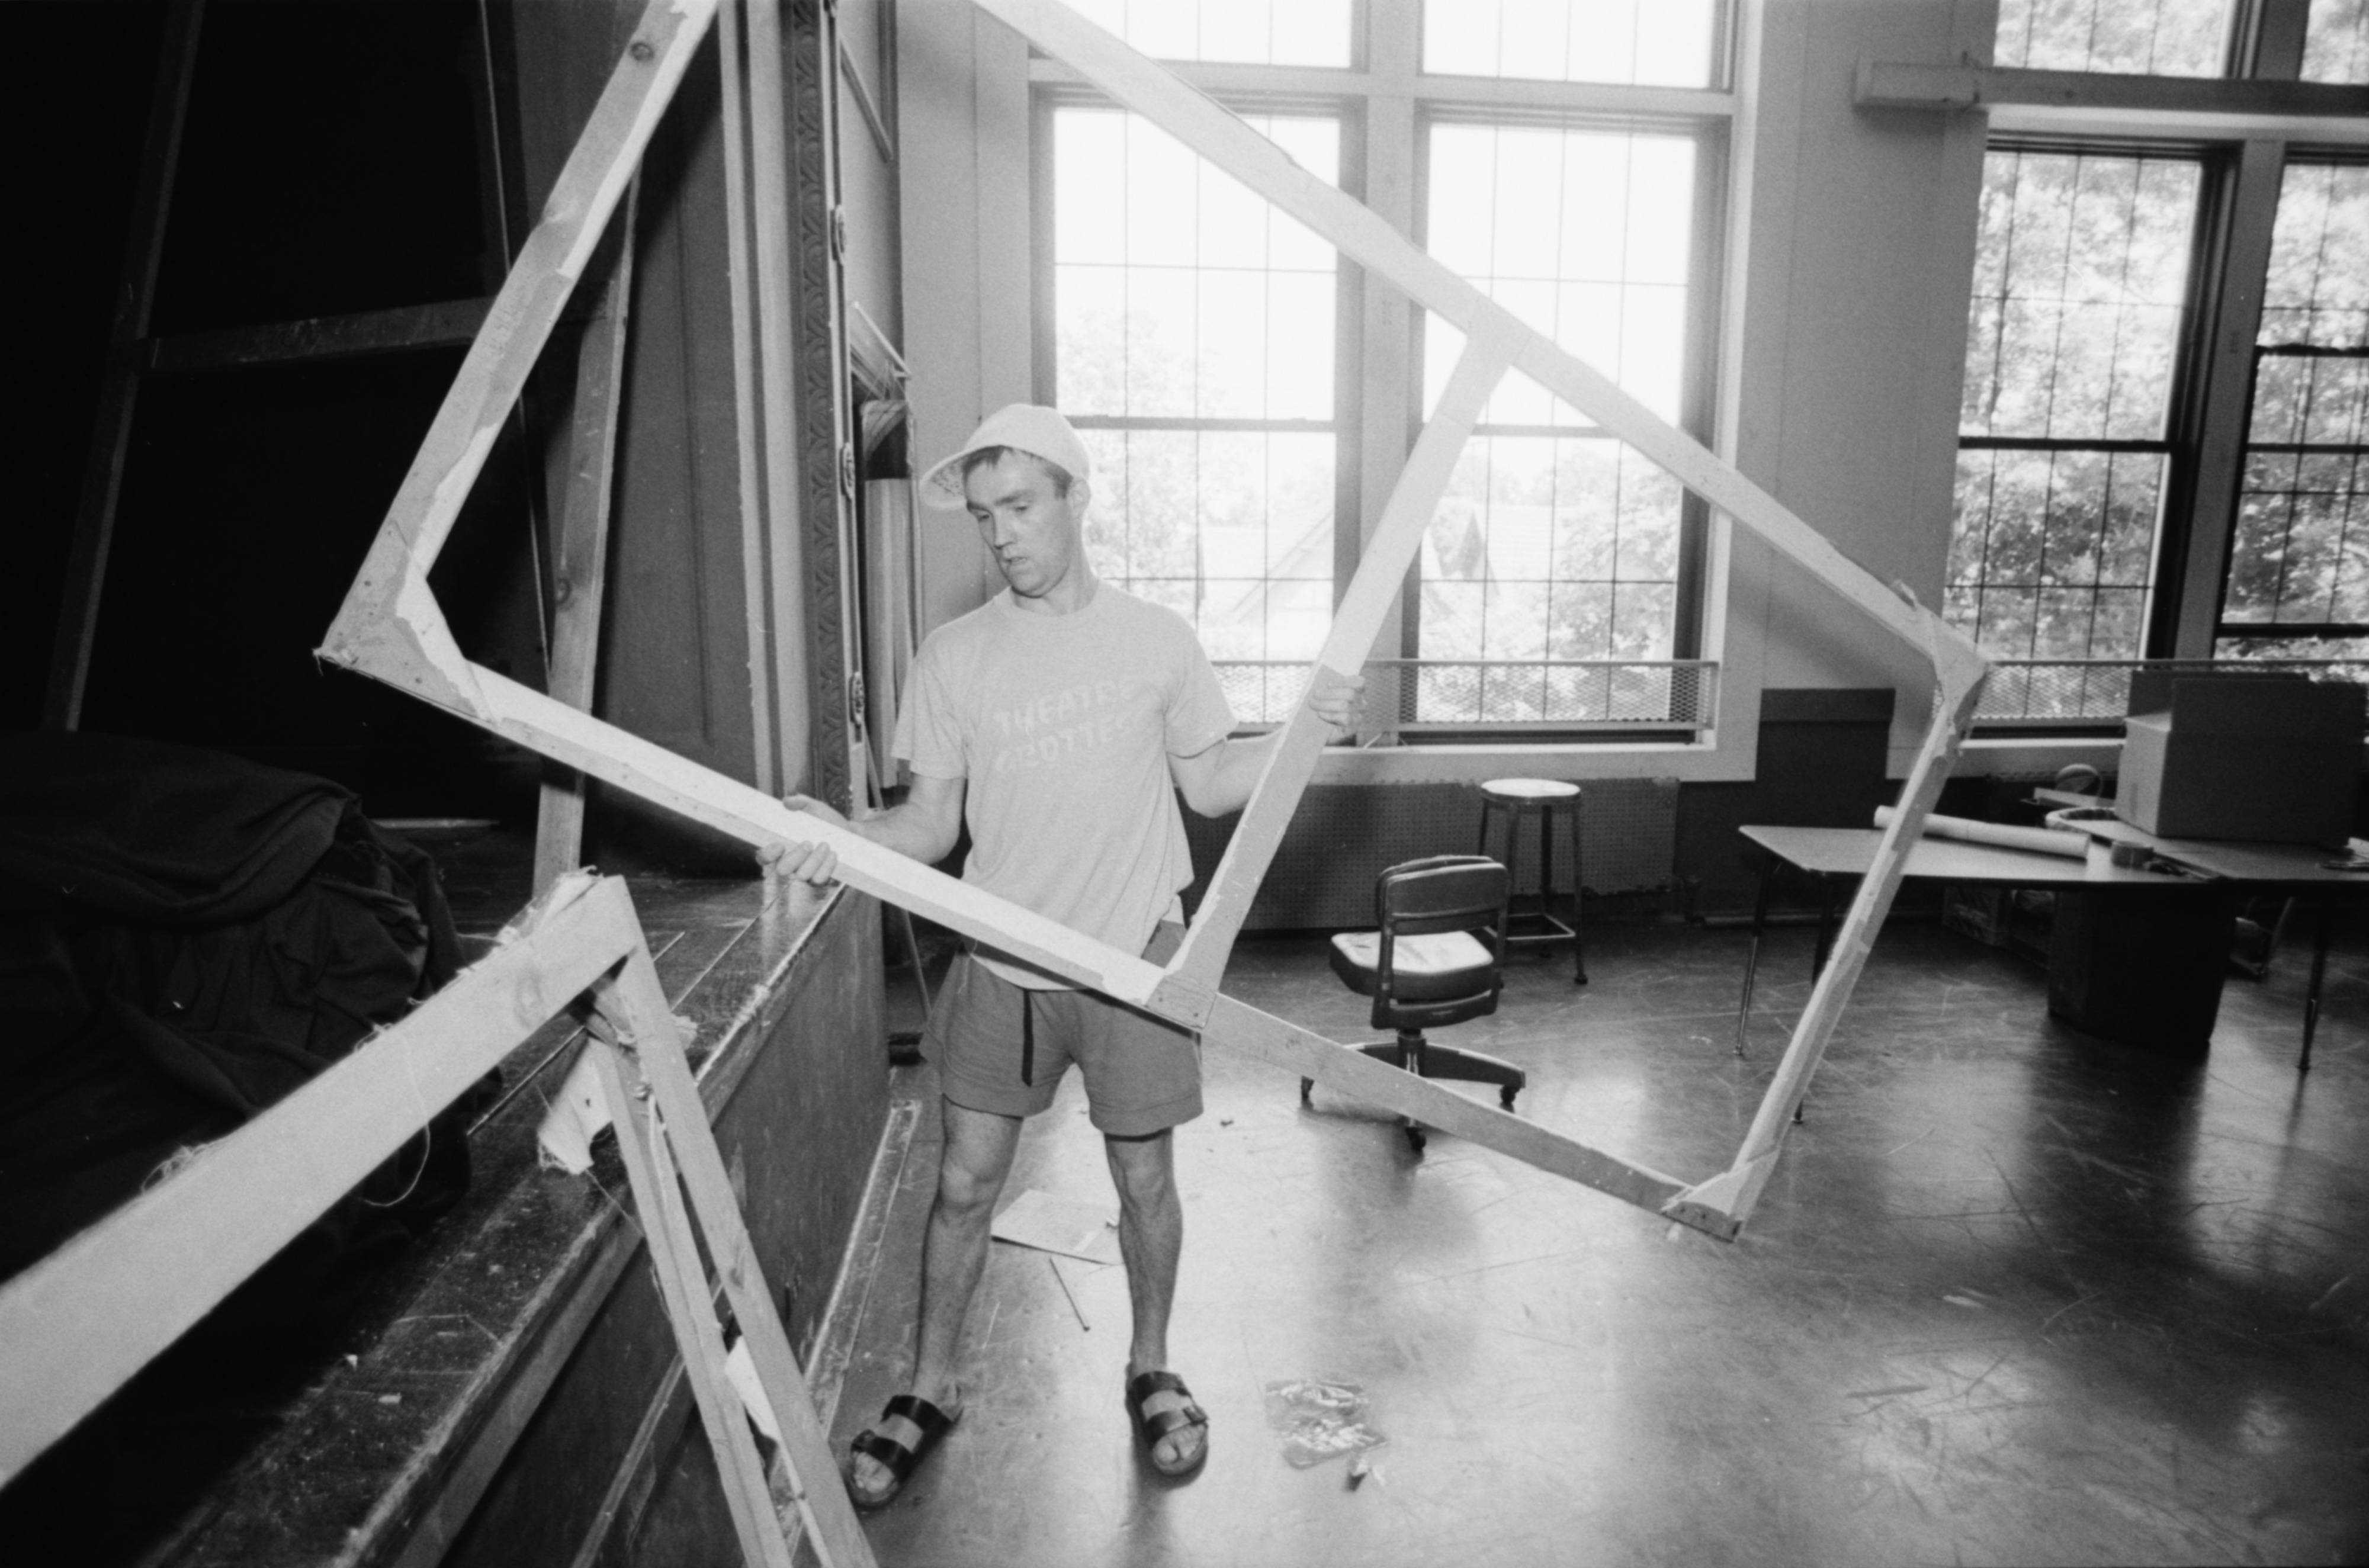 Malcolm Tulip Clears Community High School Theater for Renovations, June 1991 image